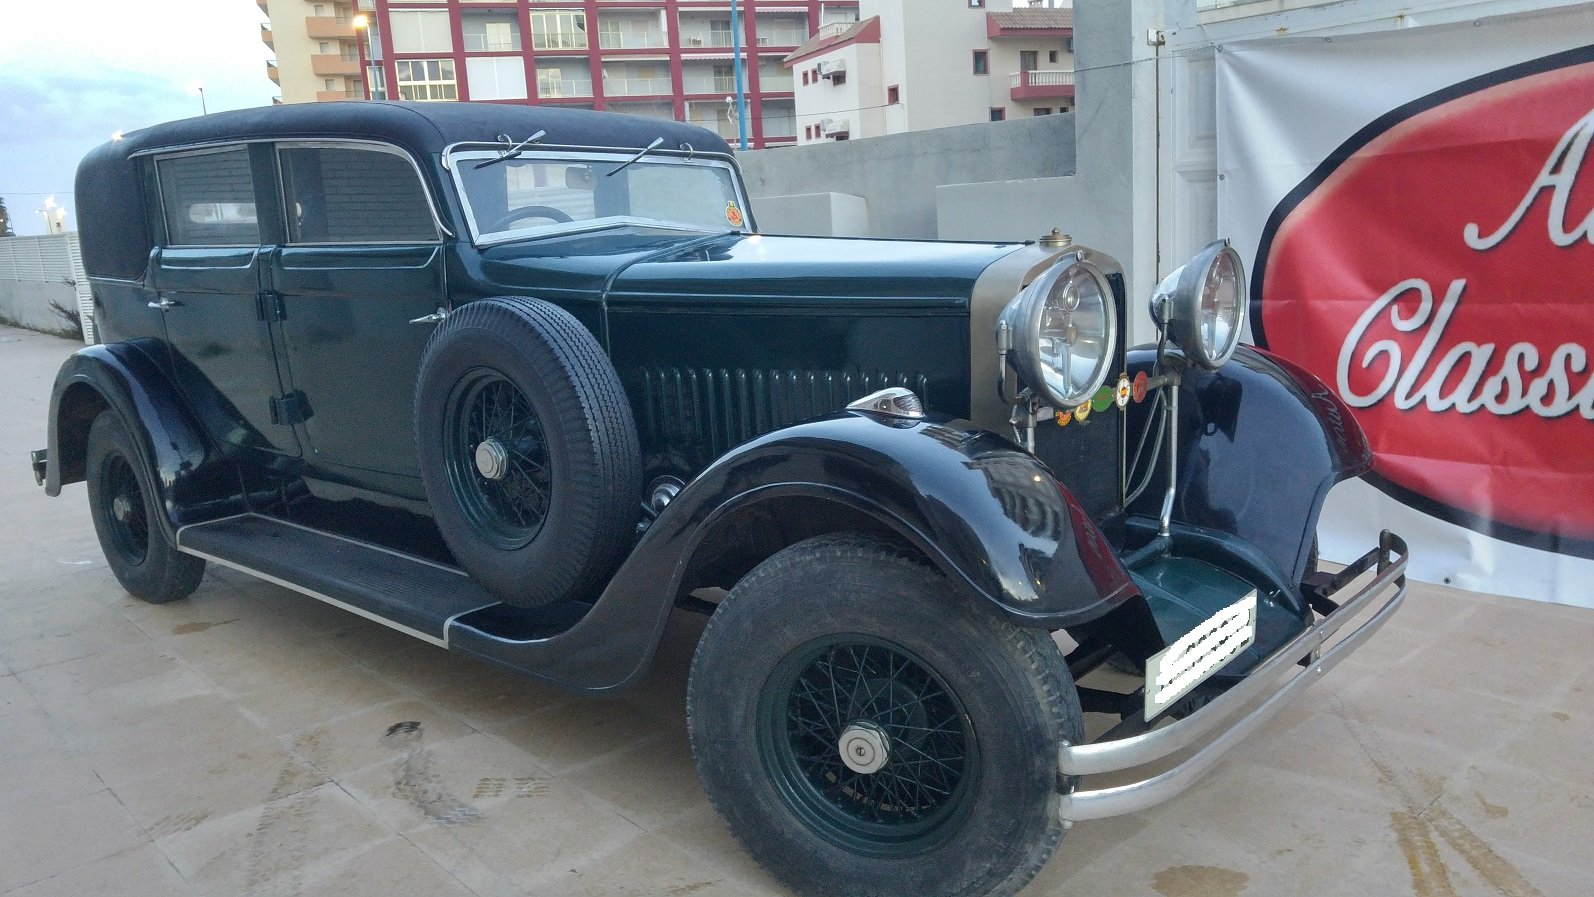 1925 Hispano suiza t49 For Sale (picture 1 of 6)